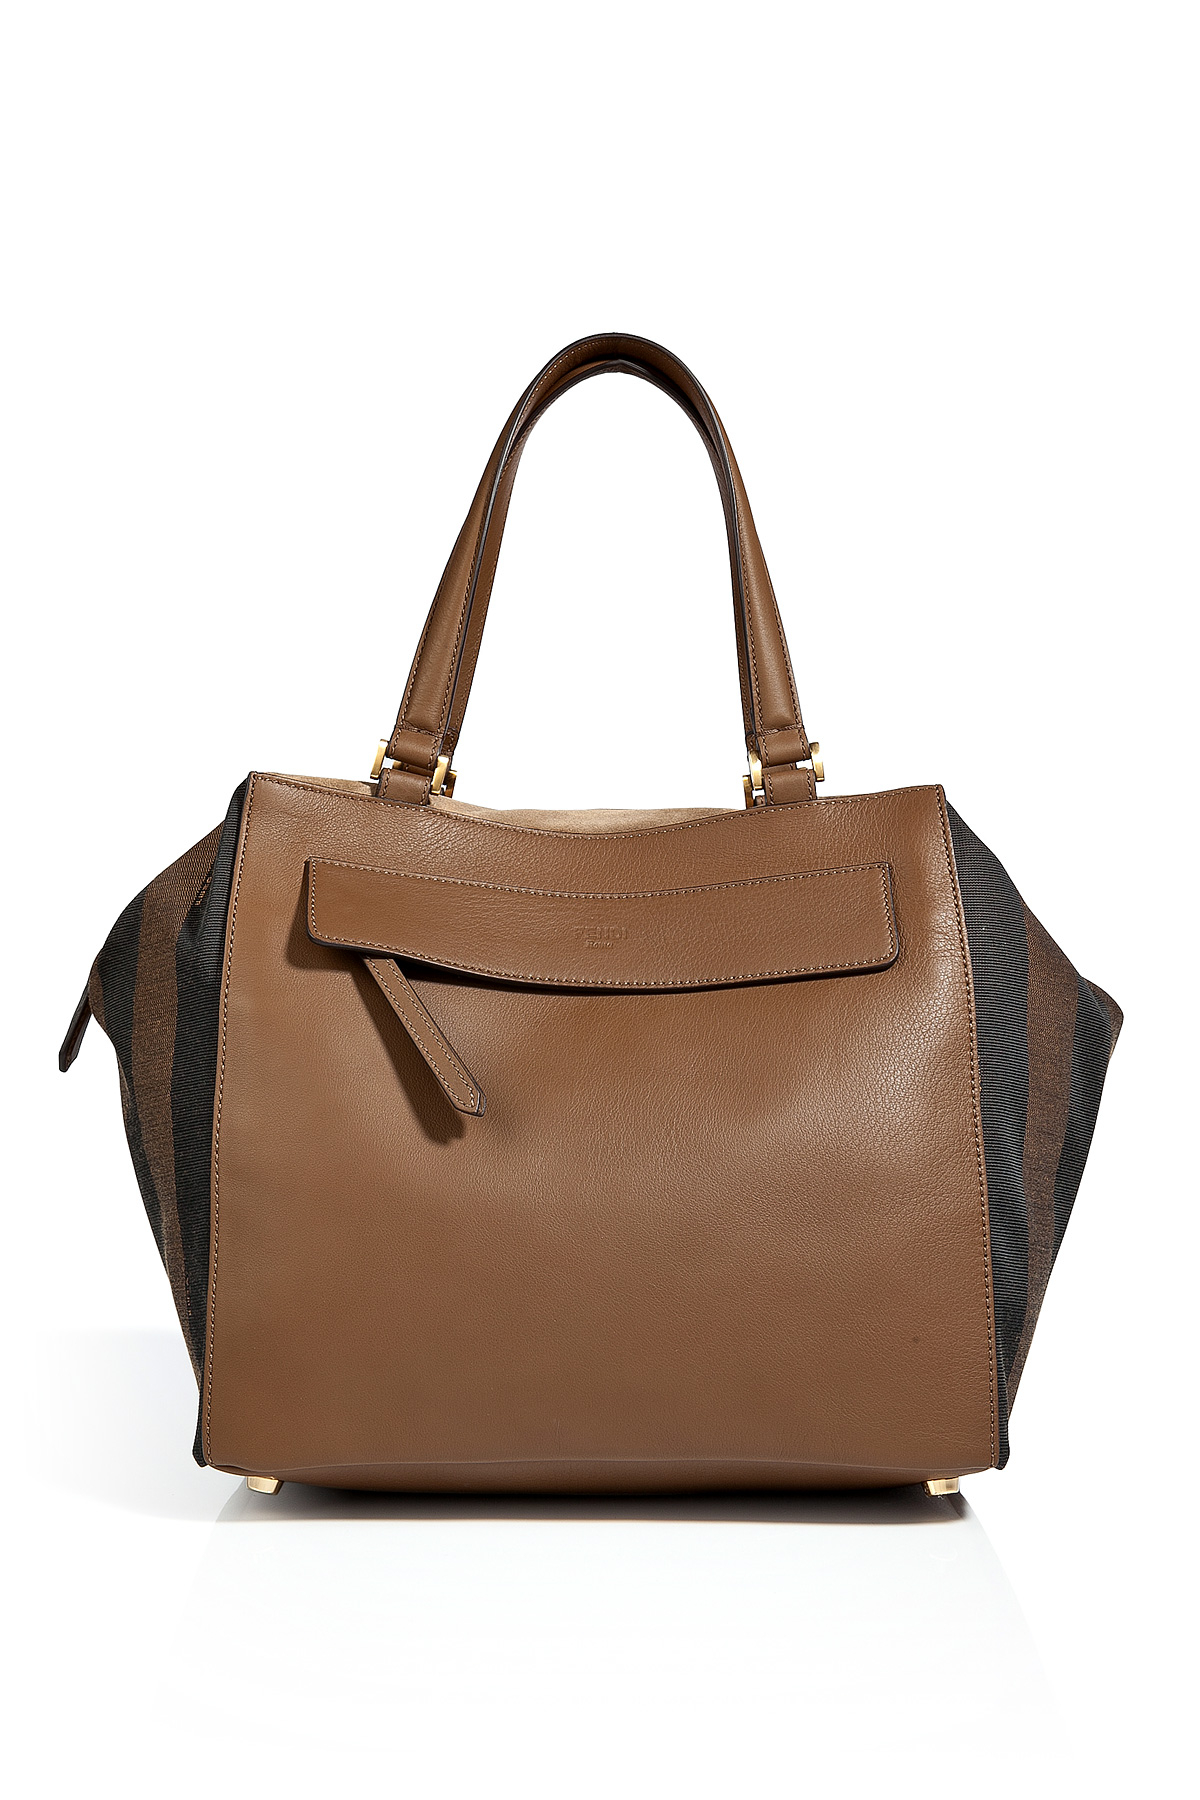 Fendi Pequin Small Striped Satchel in Tobaccoforest in Brown - Lyst 236d7f4a65